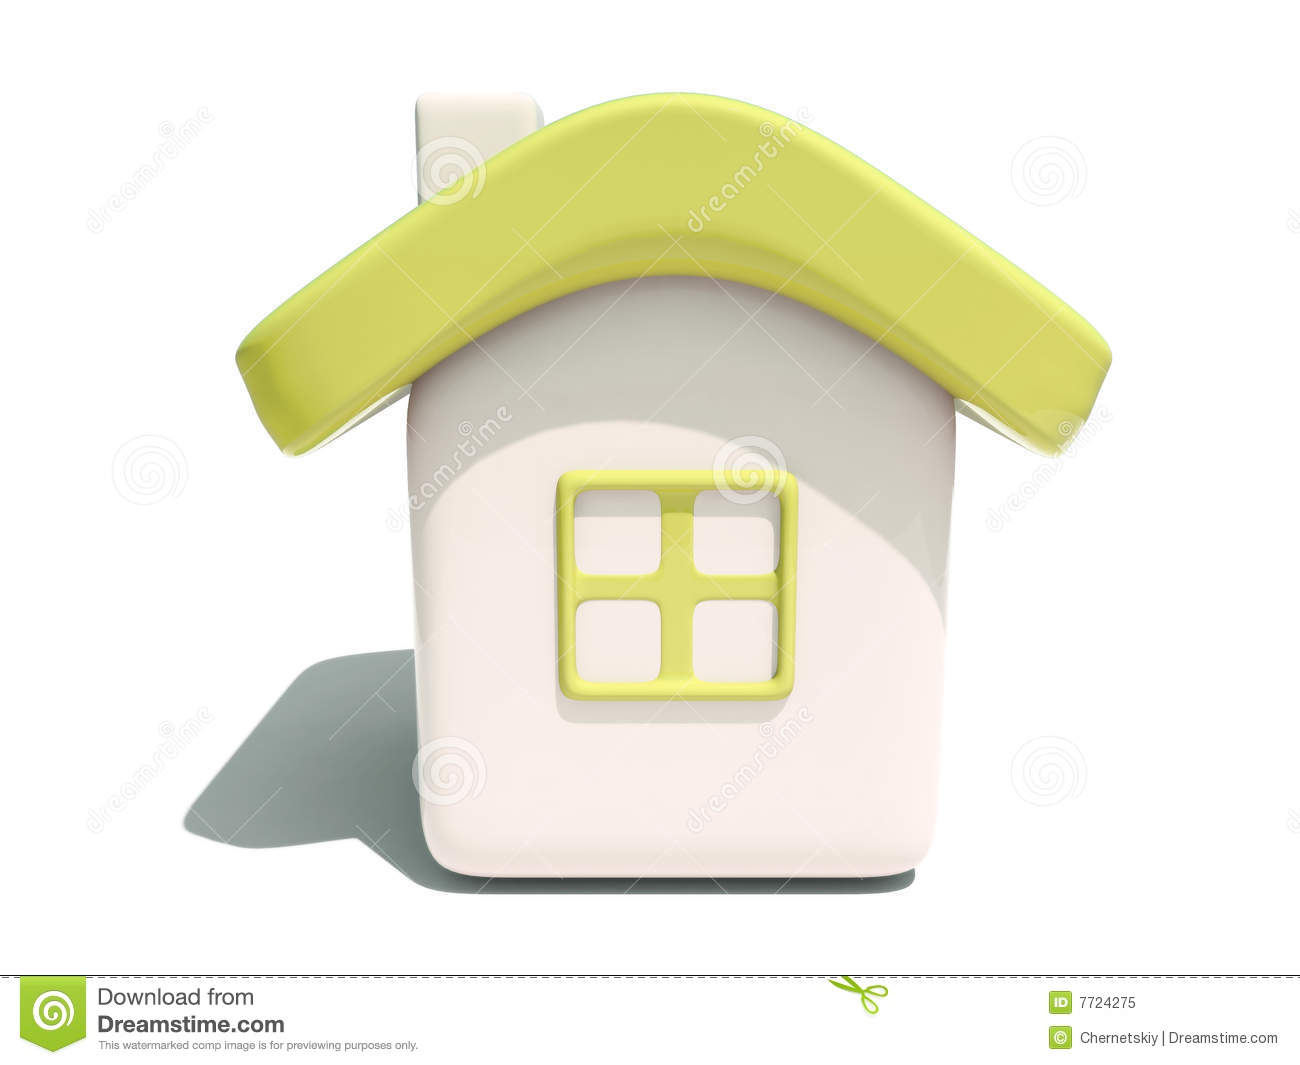 Simple 3d yellow house front view royalty free stock photo for Simple house front view